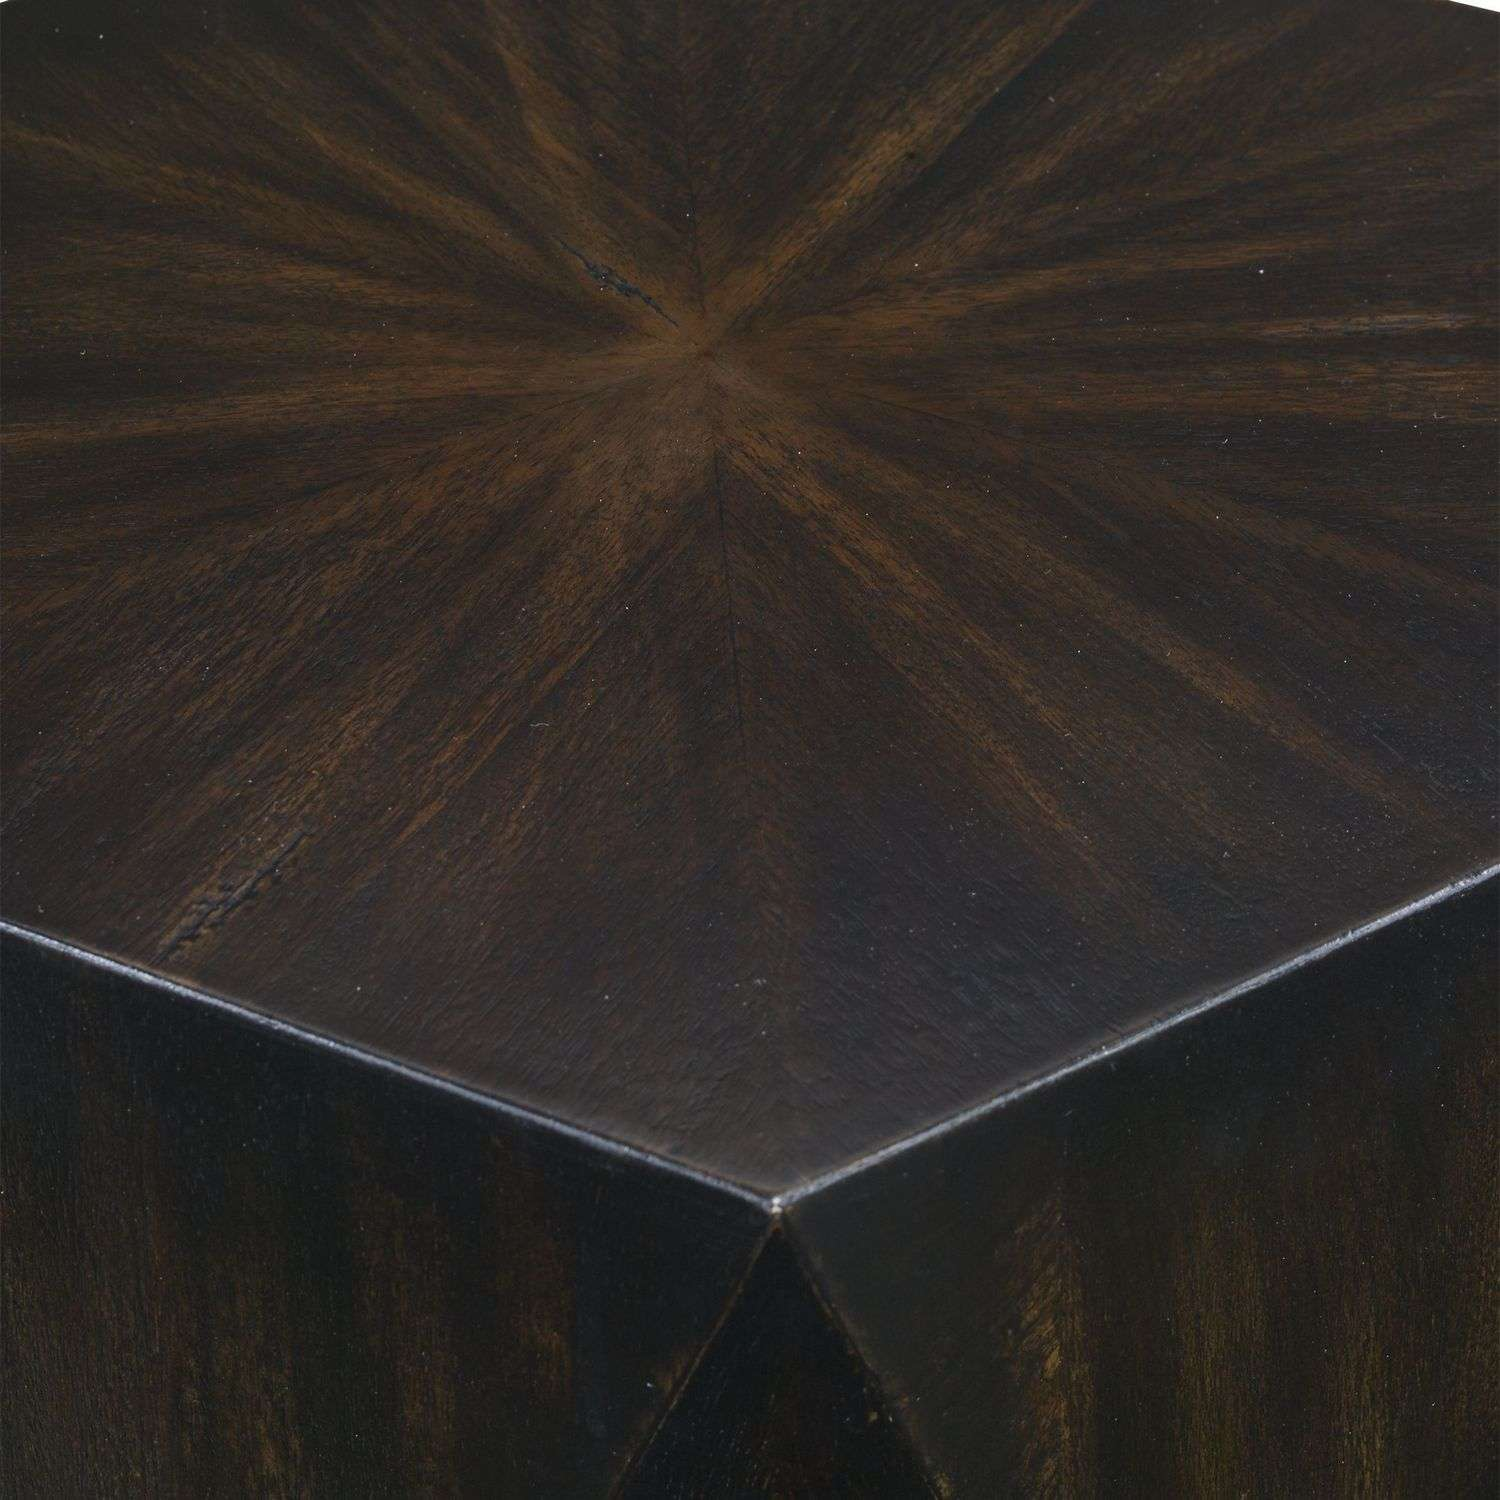 Uttermost Volker Small Coffee Table - Black